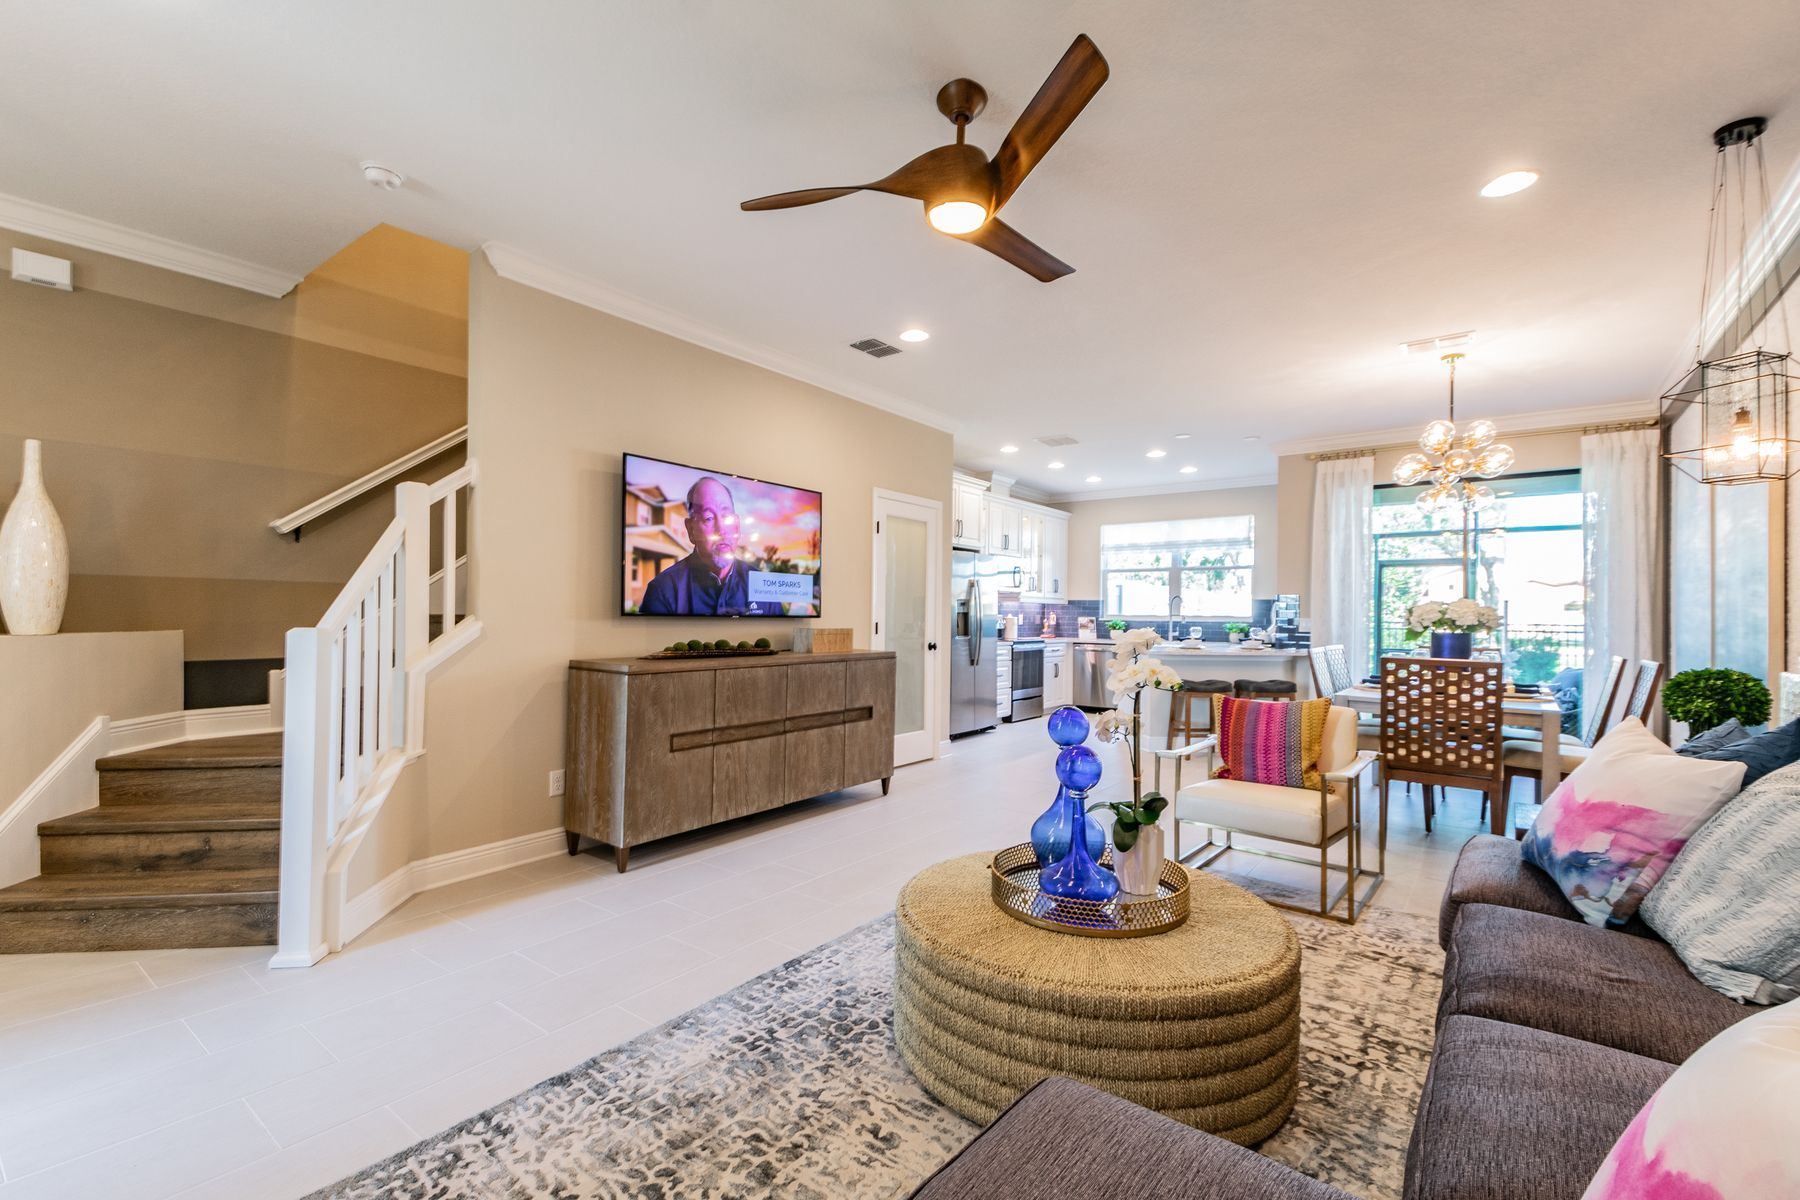 2496 Golden Pasture Circle (Covington II Coastal)